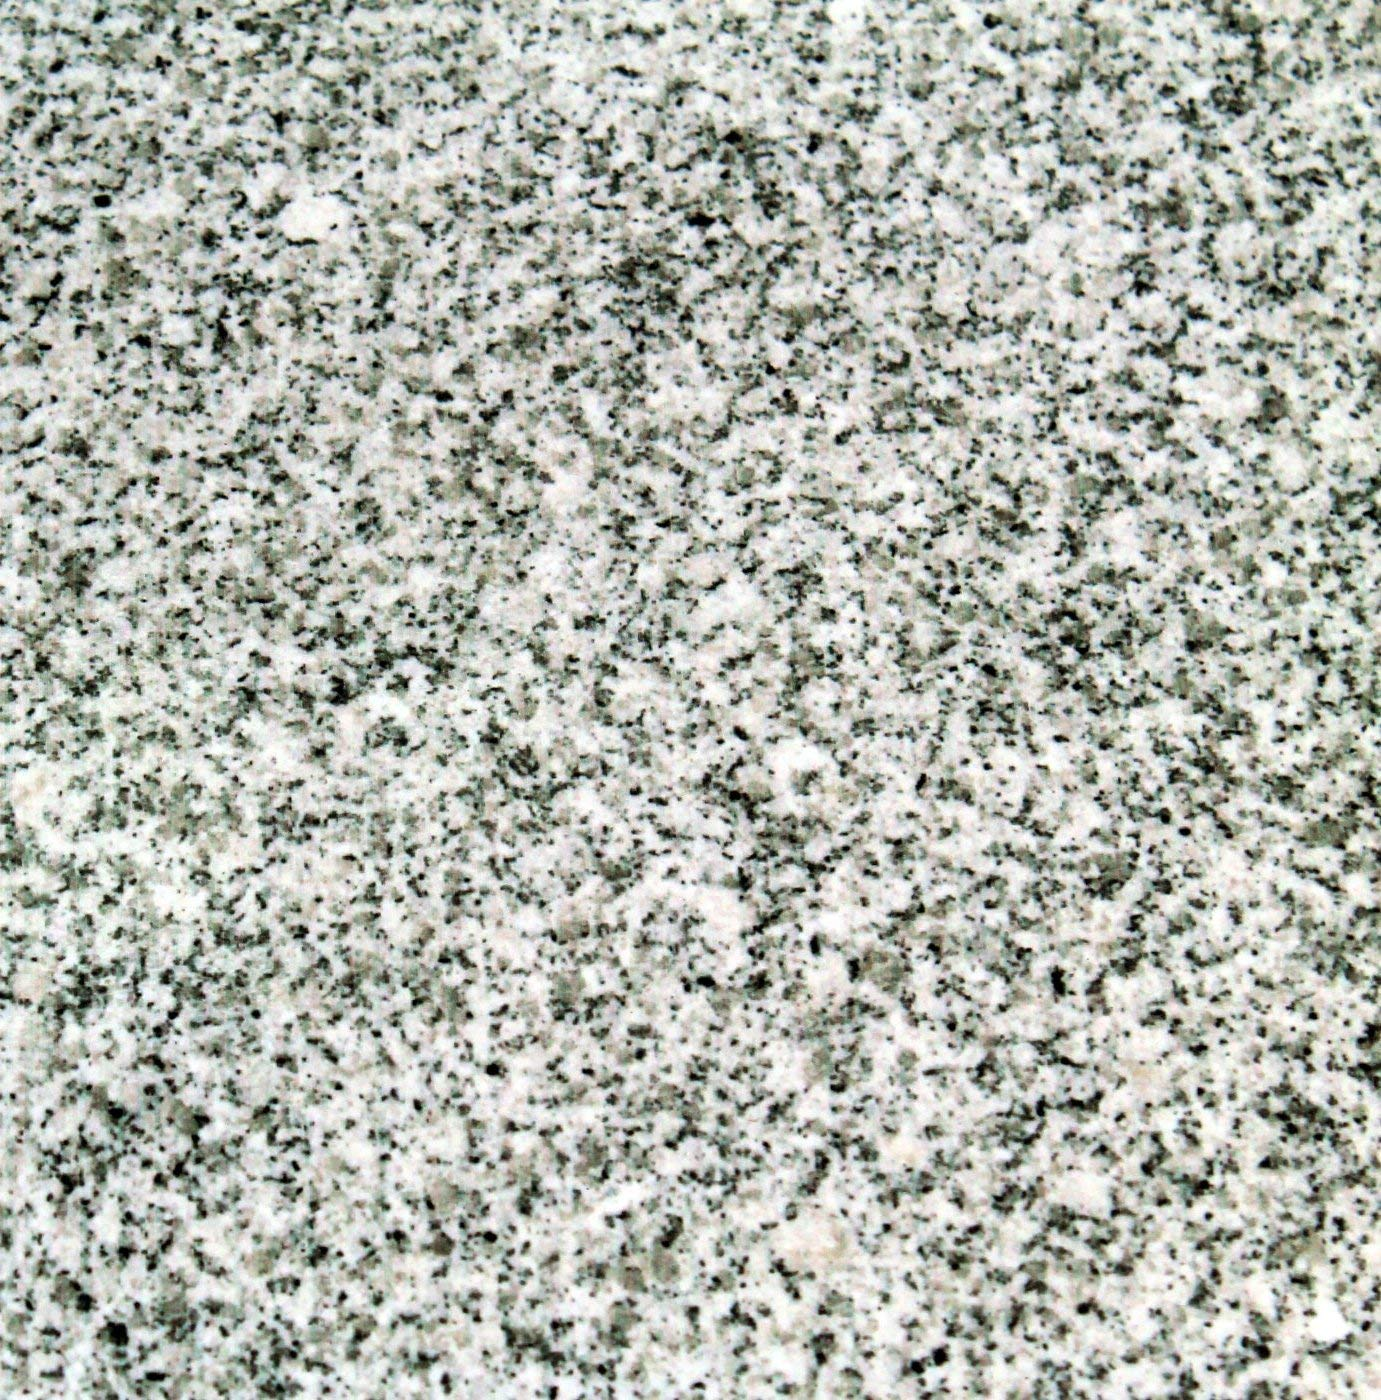 Instant Granite Luna Pearl Counter Top Film 36'' x 144'' Self Adhesive Vinyl Laminate Counter Top Contact Paper Faux Peel and Stick Self Application by Instant Granite (Image #1)